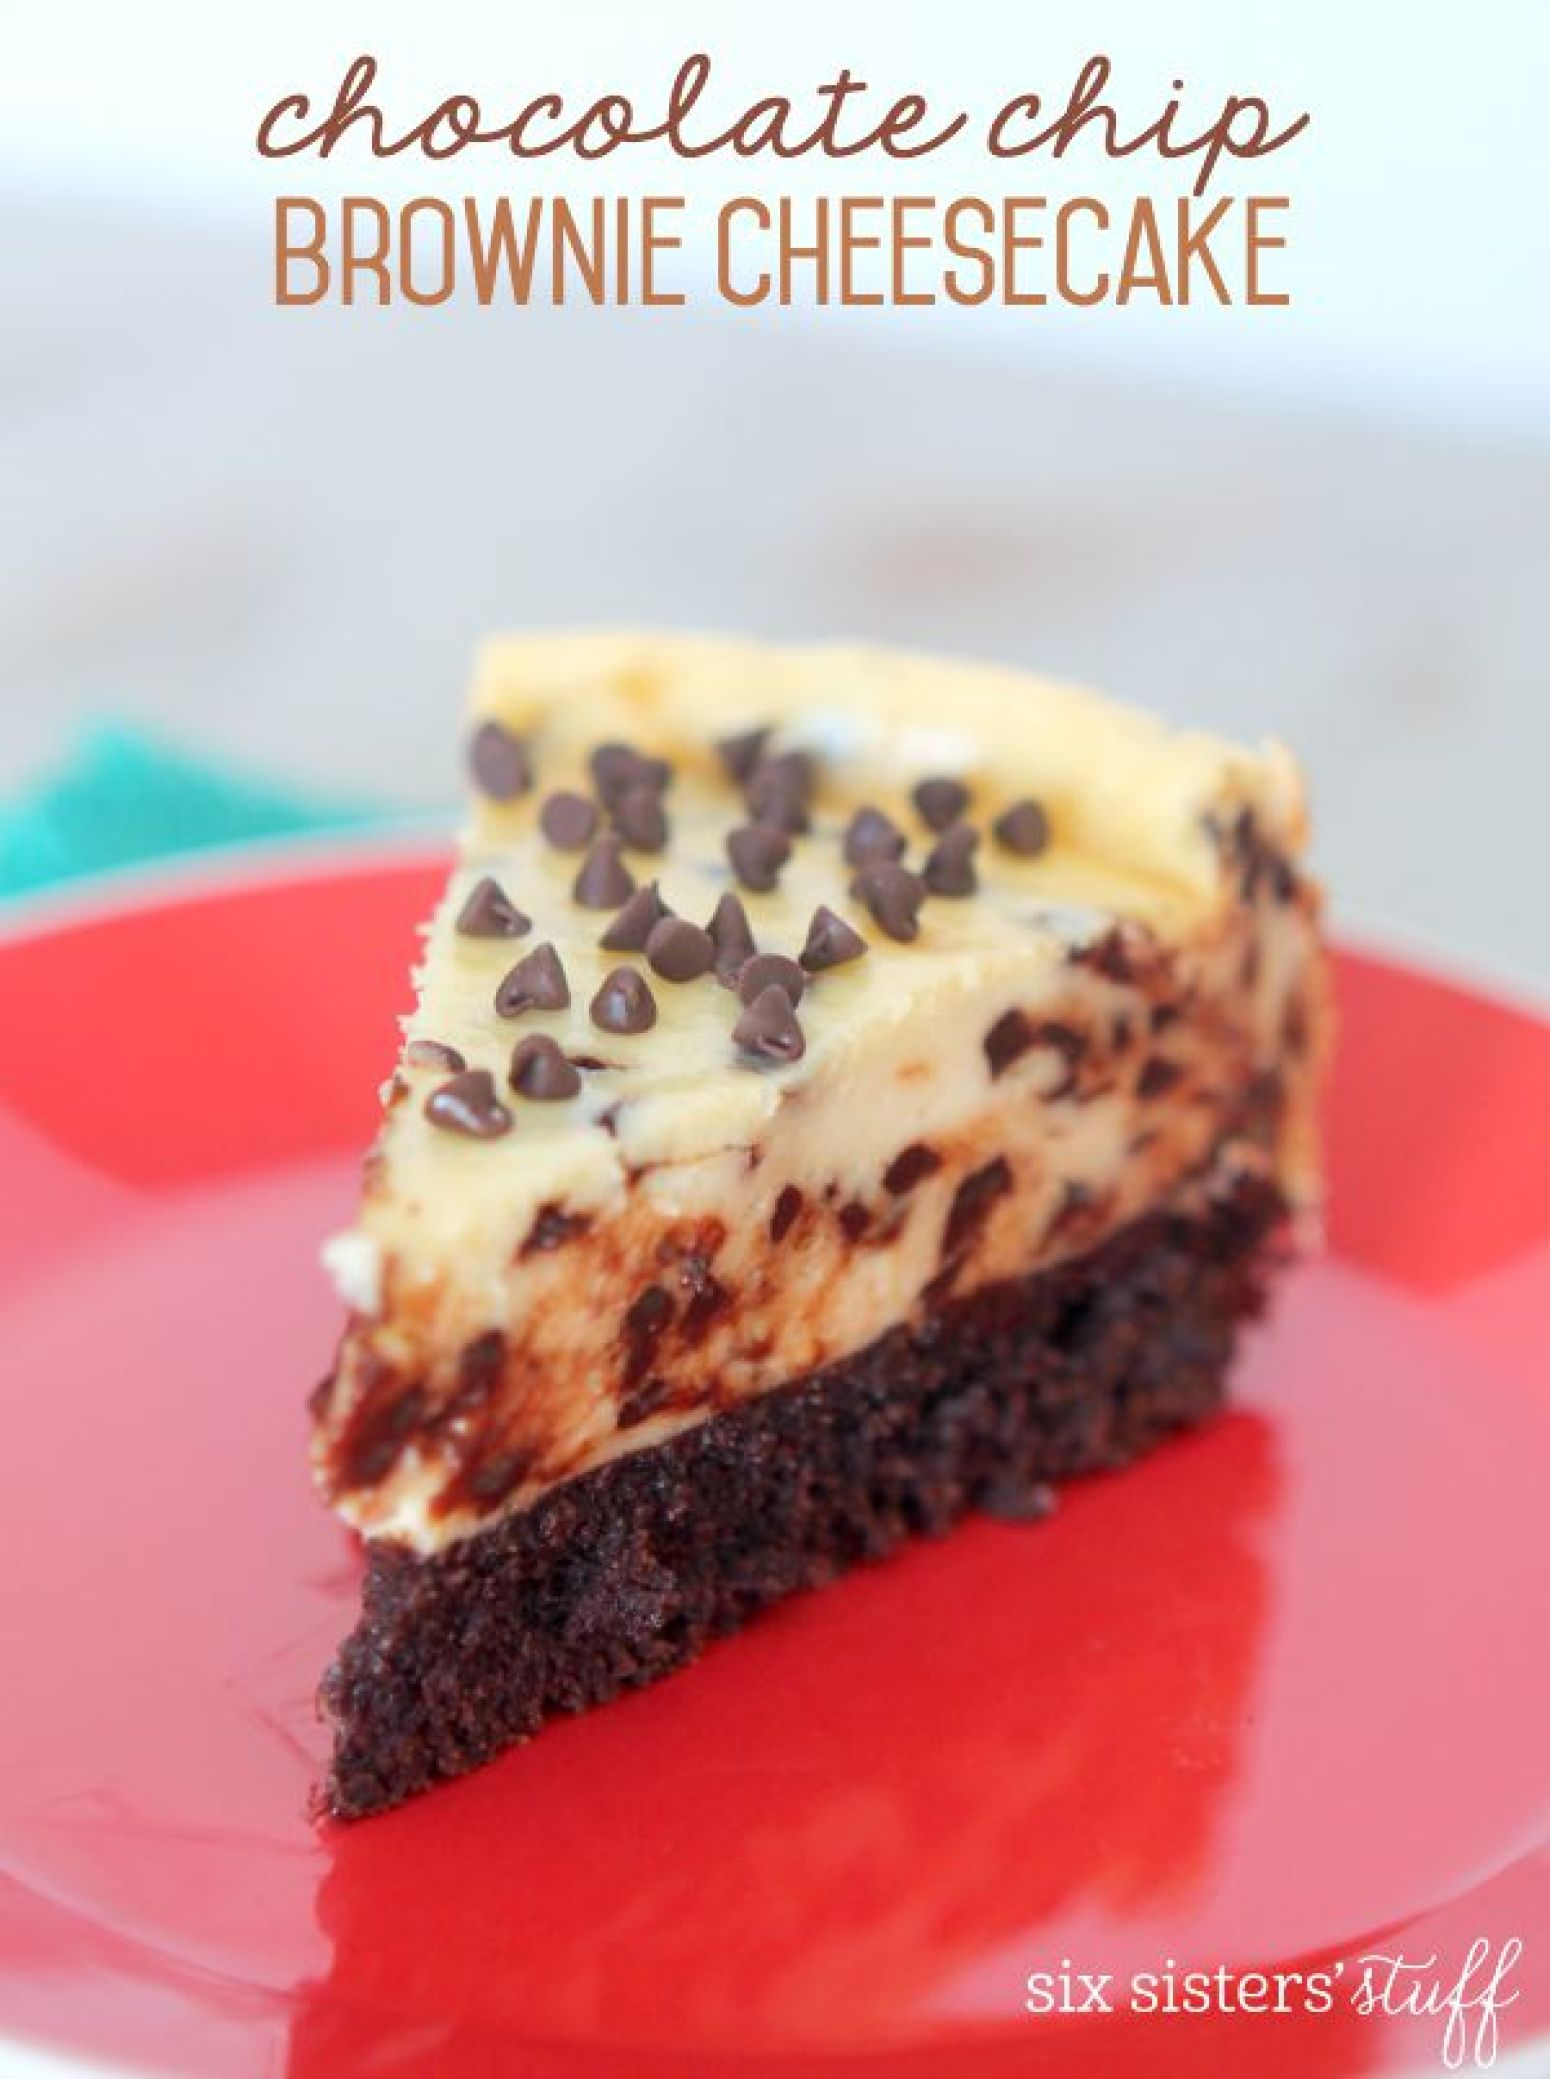 Chocolate Chip Brownie Cheesecake Recipe | Just A Pinch ...